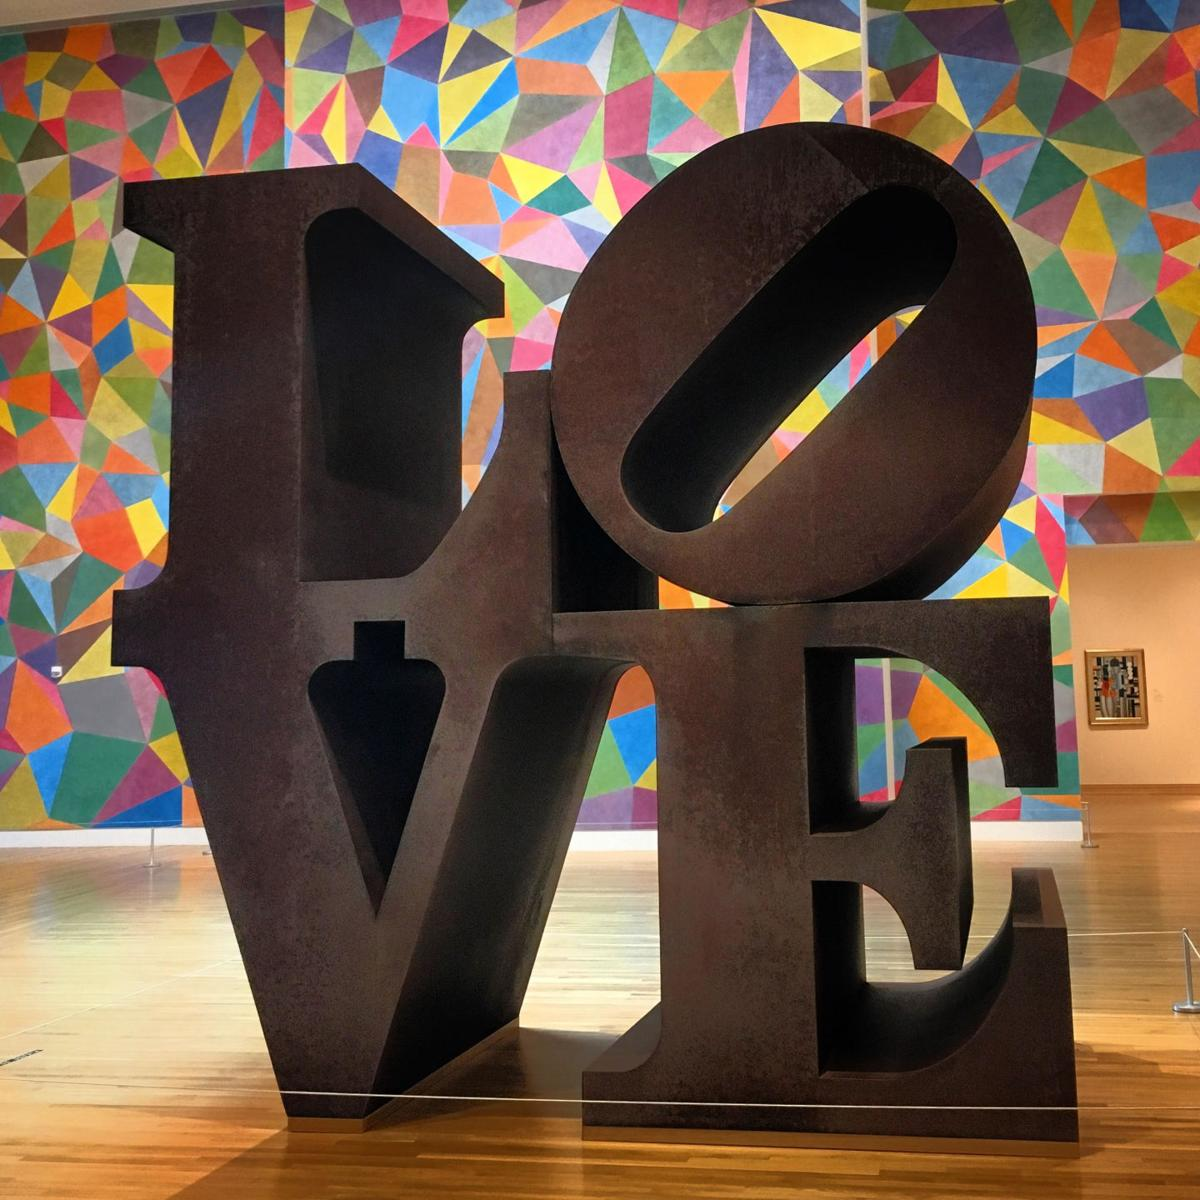 """LOVE"" by Robert Indiana at the IMA at Newfields"